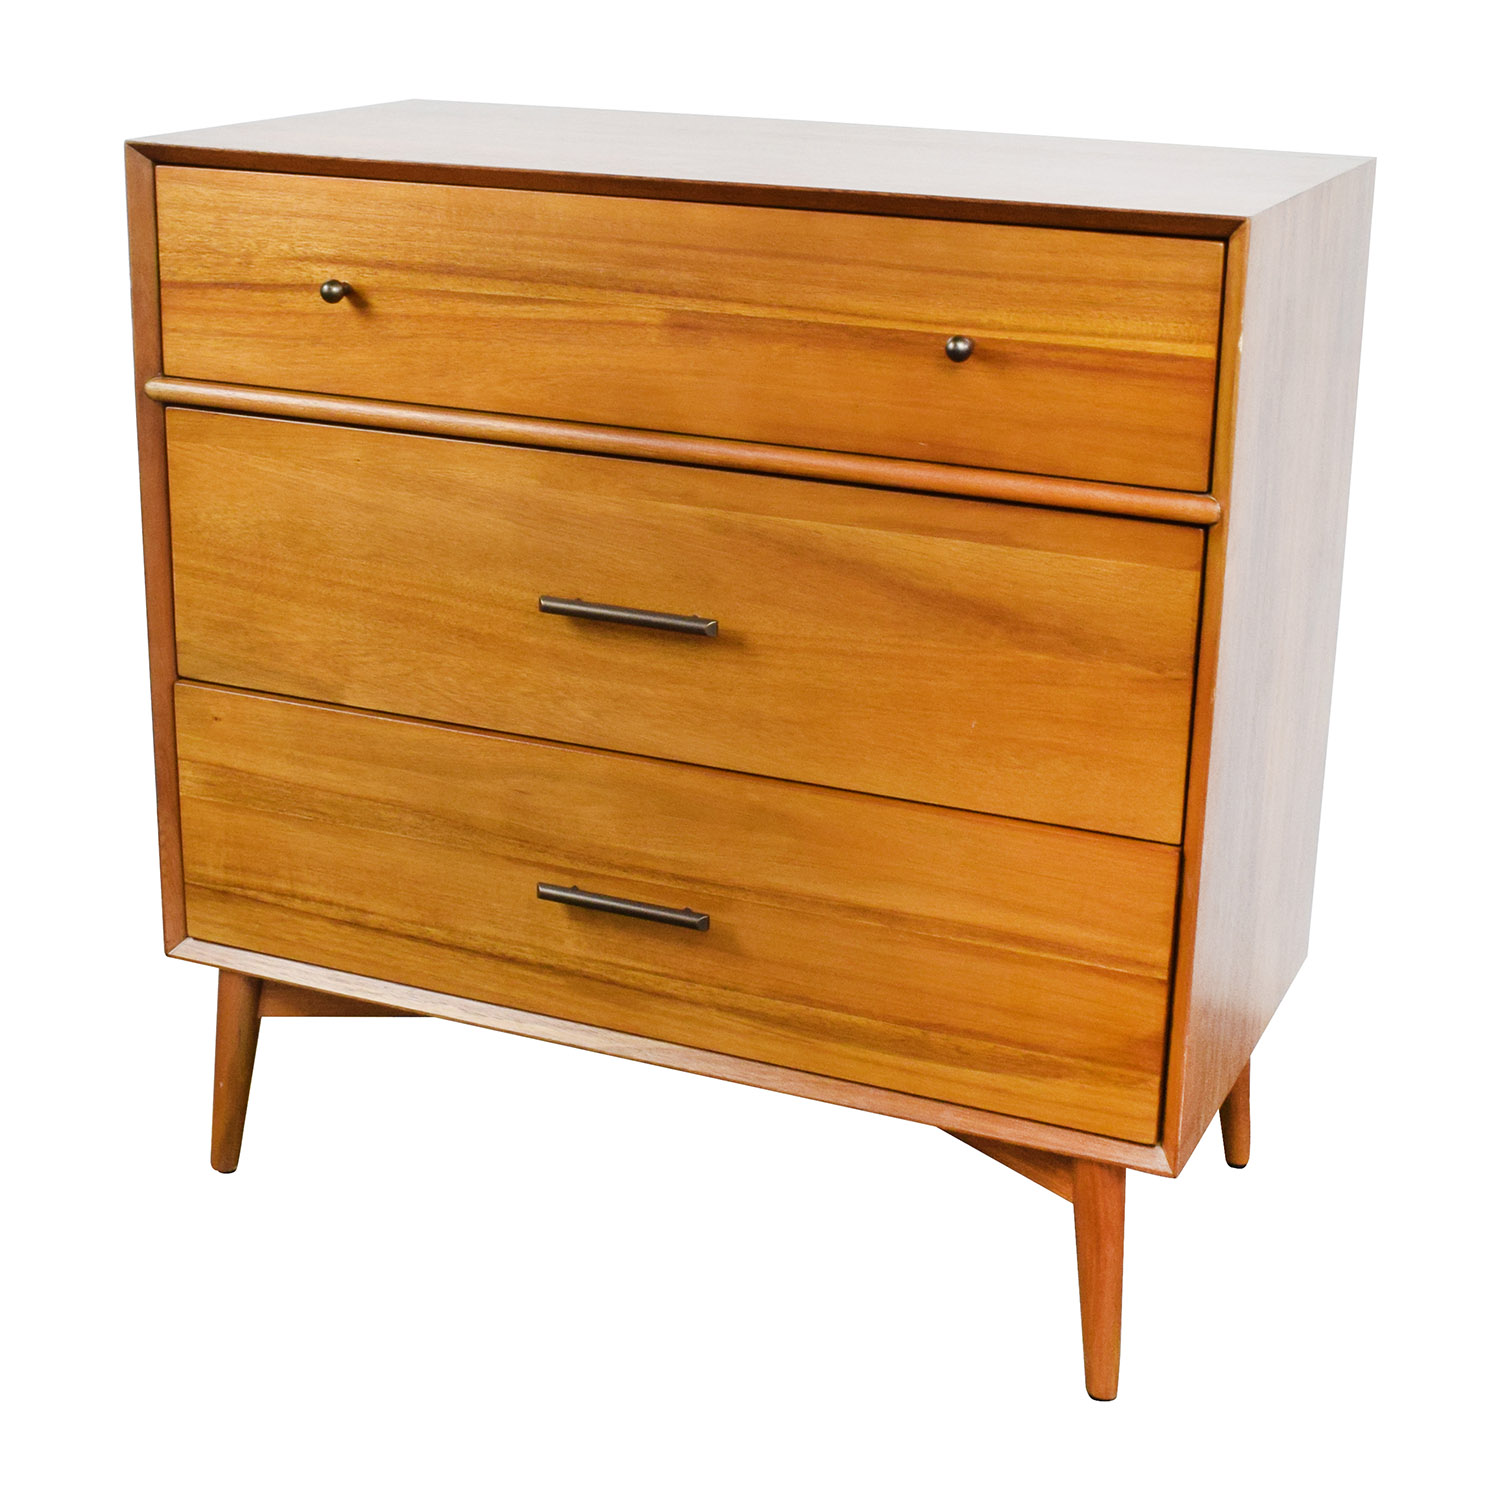 39 Off West Elm West Elm Mid Century 3 Drawer Dresser